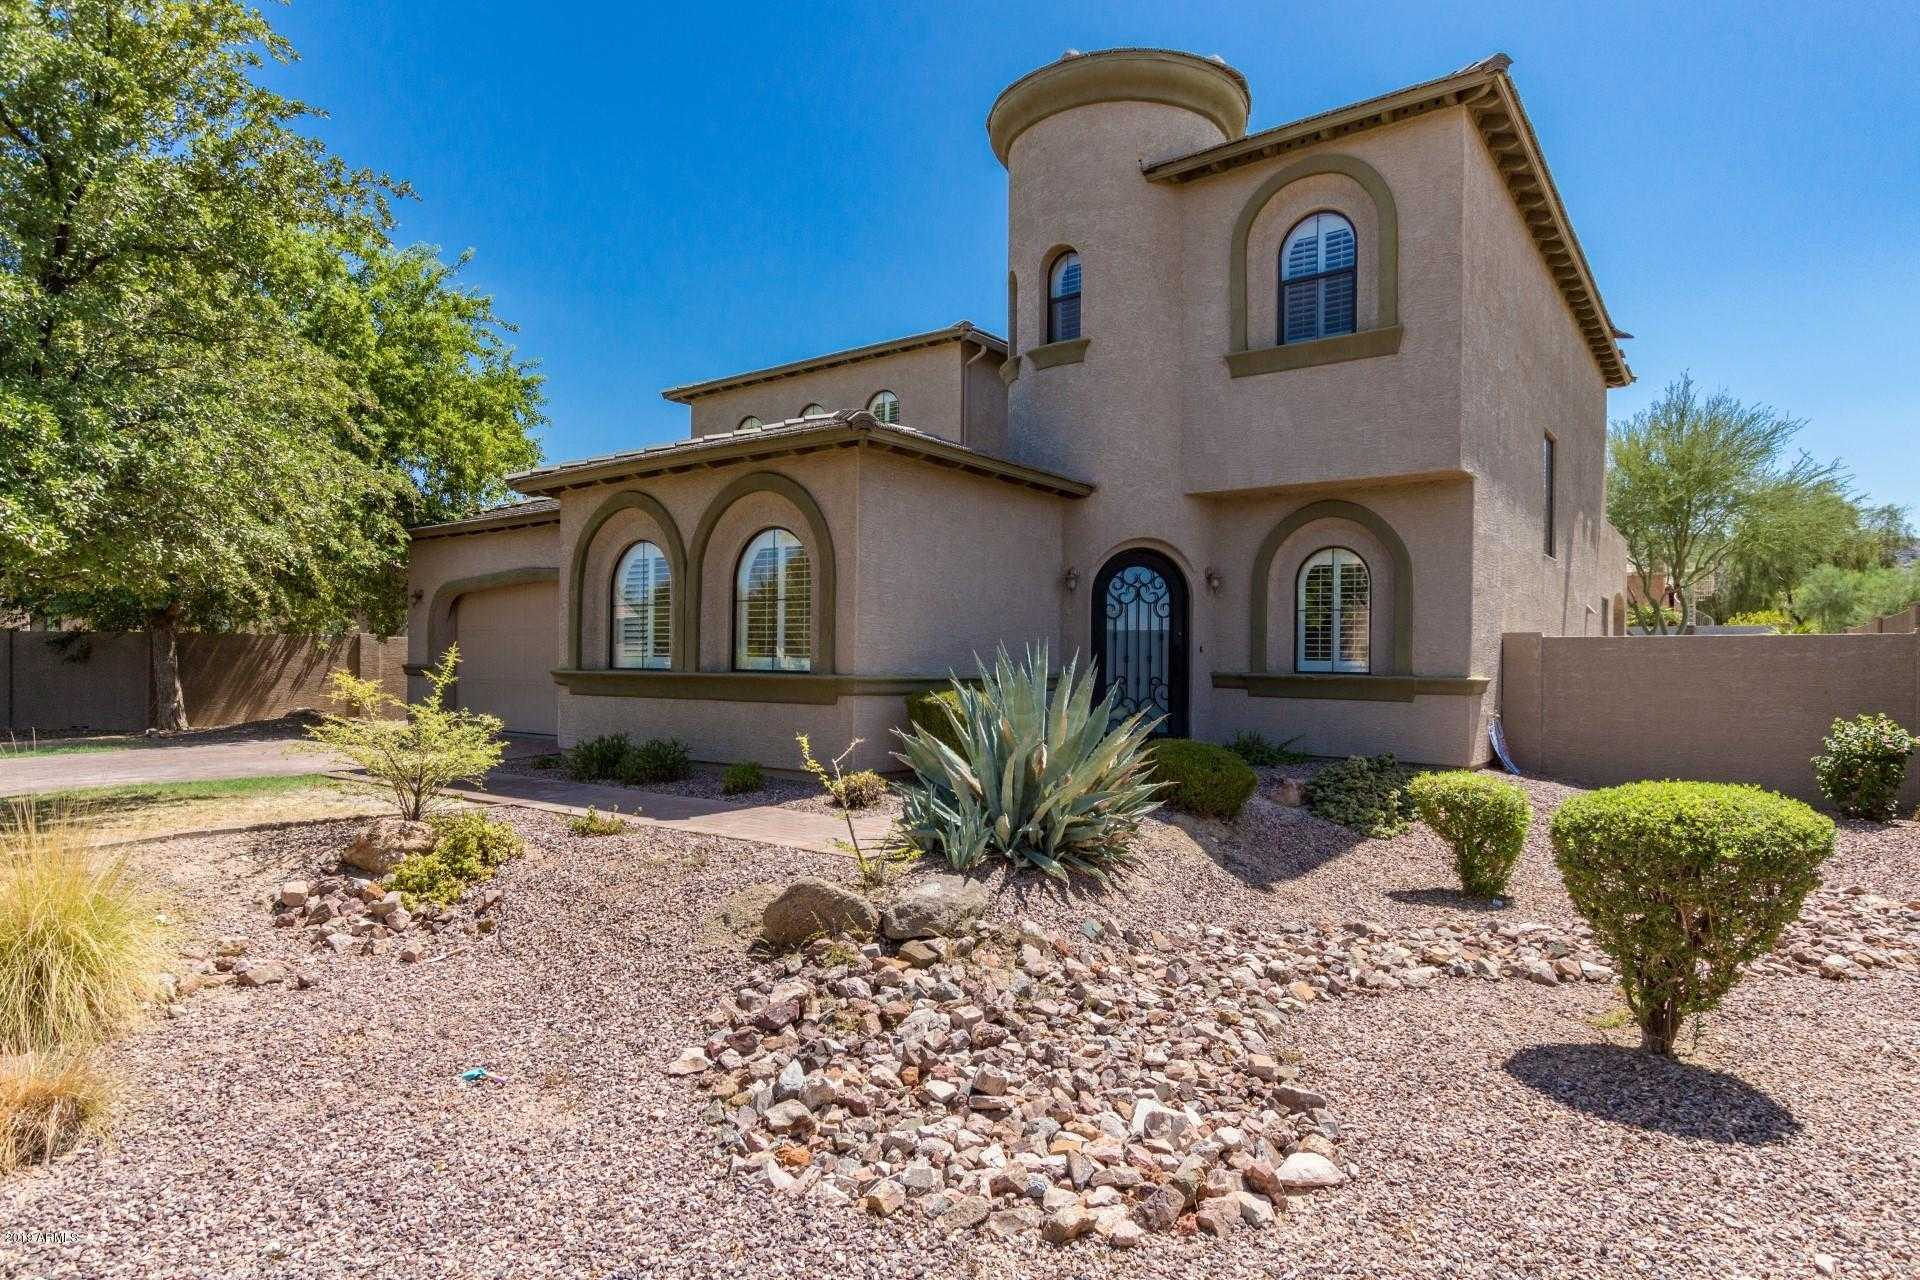 $500,000 - 5Br/3Ba - Home for Sale in Village At South Mountain, Phoenix